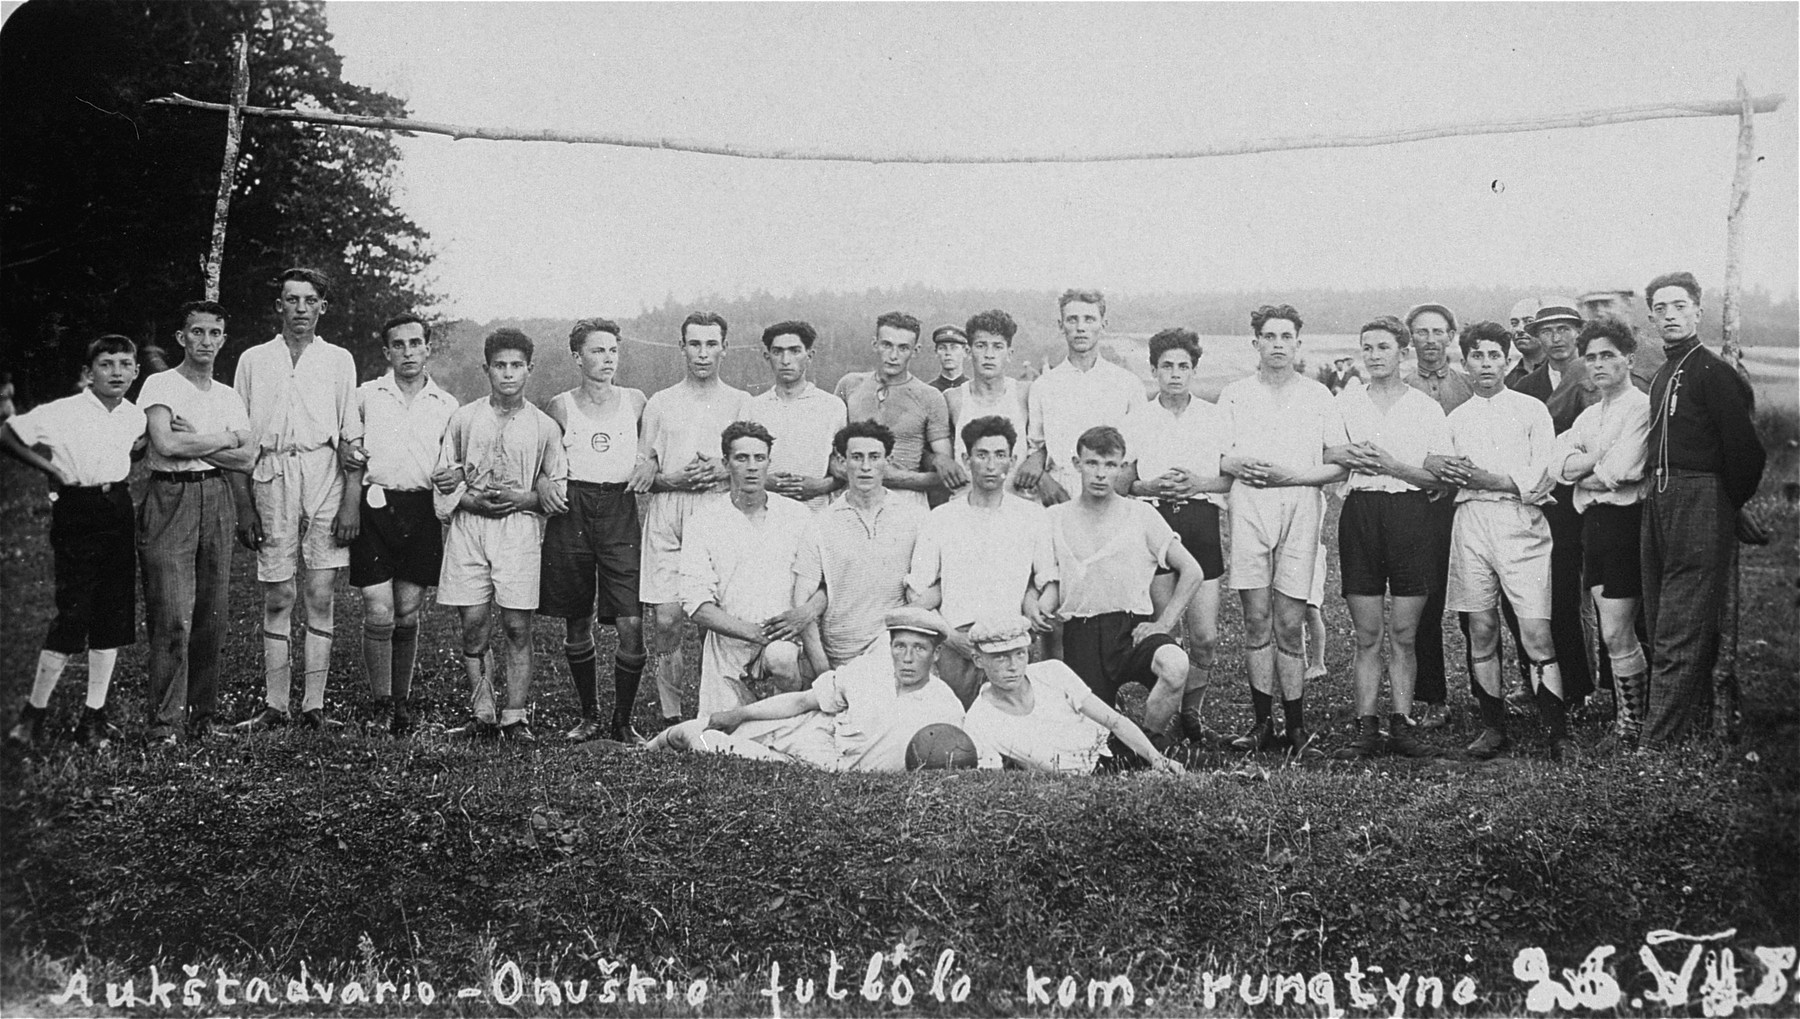 Group portrait of the Maccabi Soccer team in Lithuania. Eliezer Kaplan is pictured at the far right.